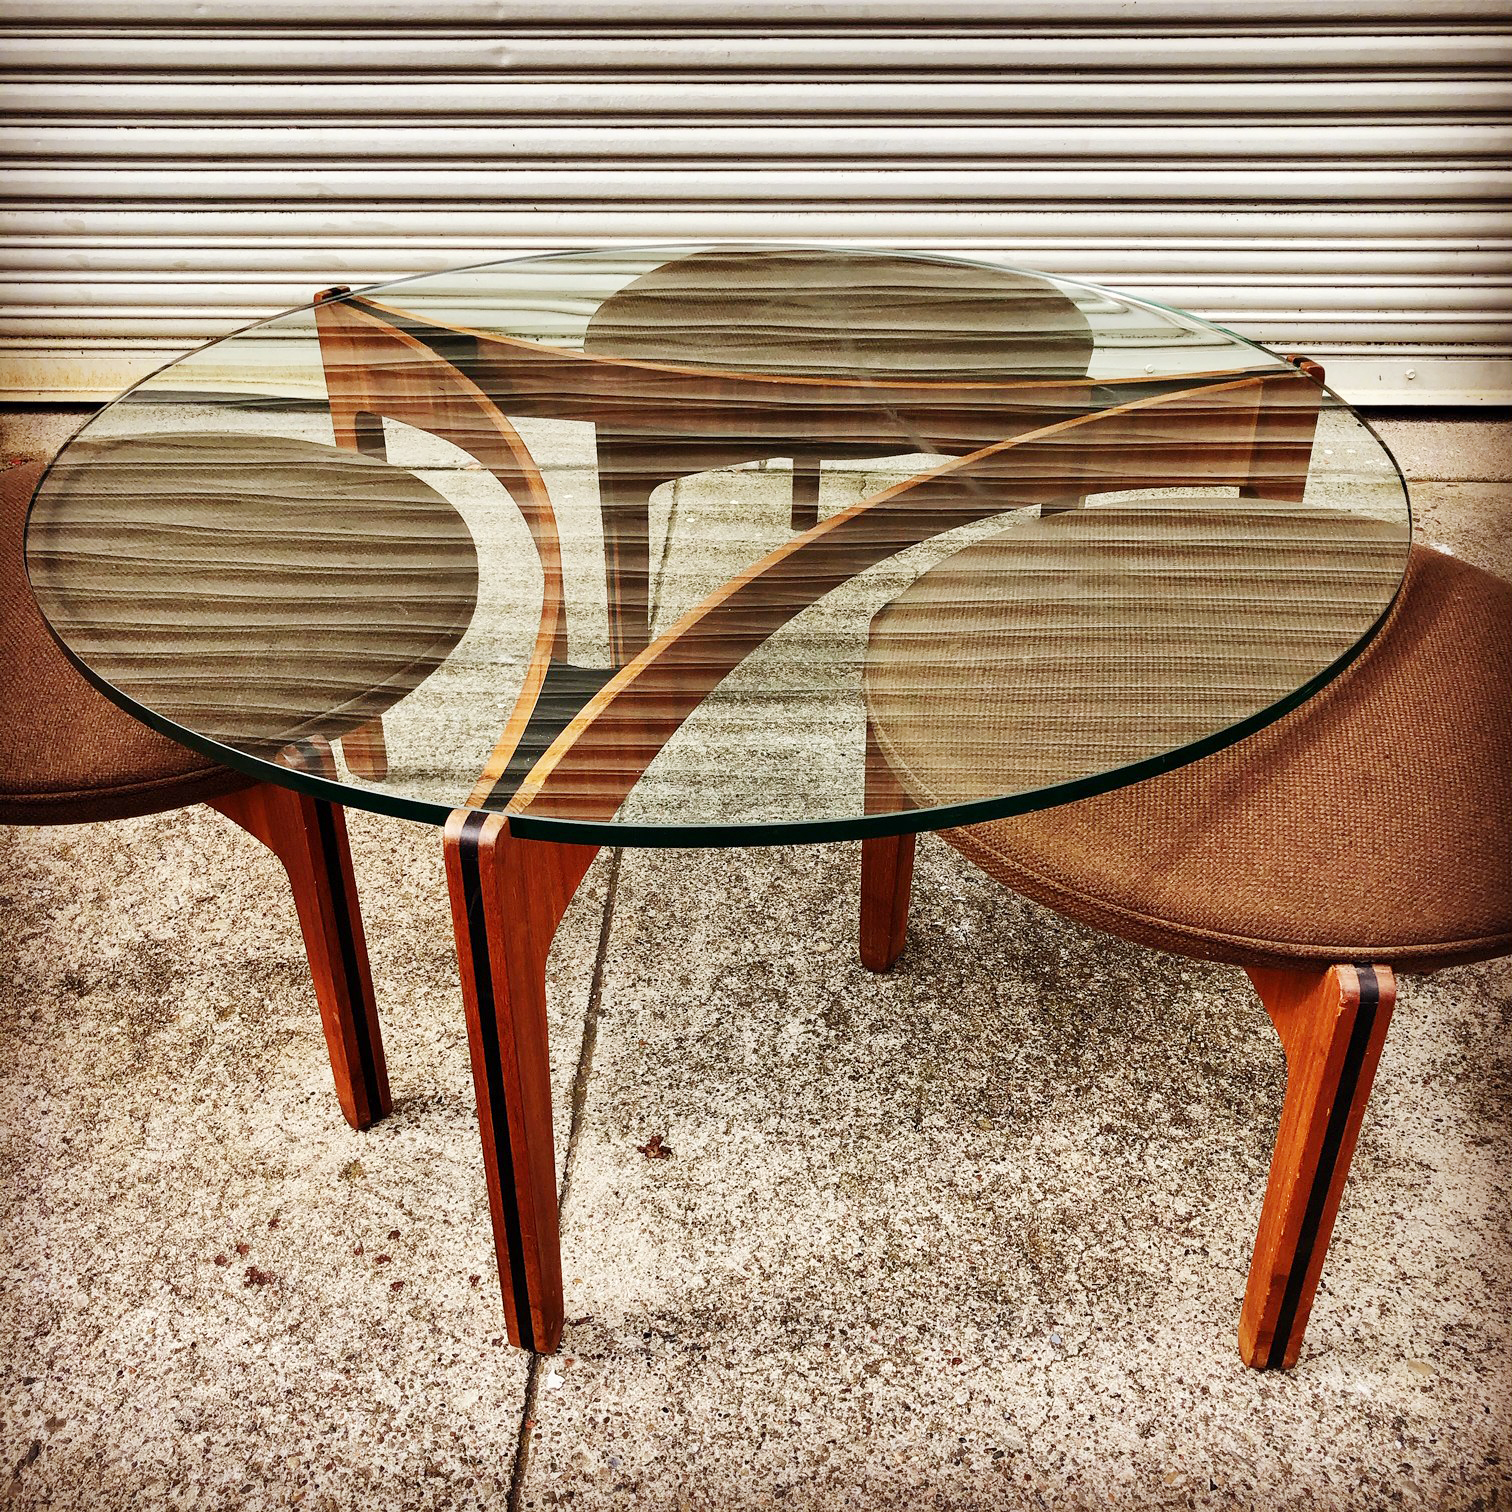 Sven Ellekaer Teak Coffee Table With Three Stools Sold Midcenturysanjose